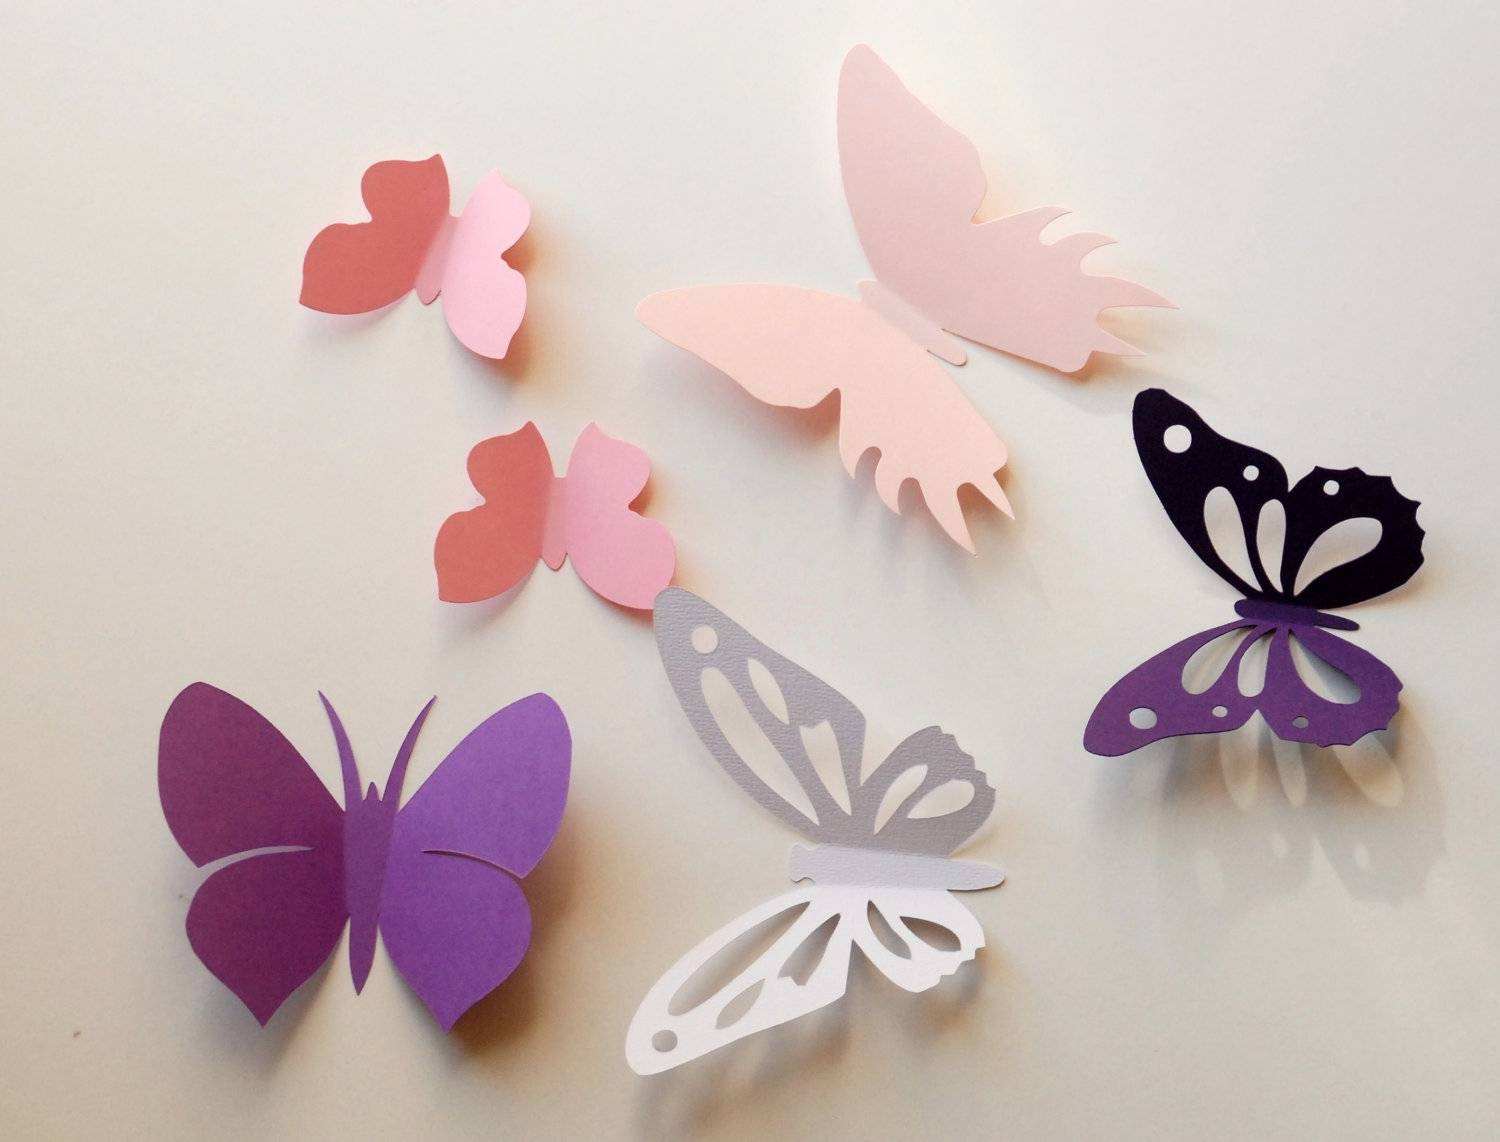 3D Paper Butterfly Wall Sticker Room Decoration Baby Within Most Up To Date White 3D Butterfly Wall Art (View 9 of 20)